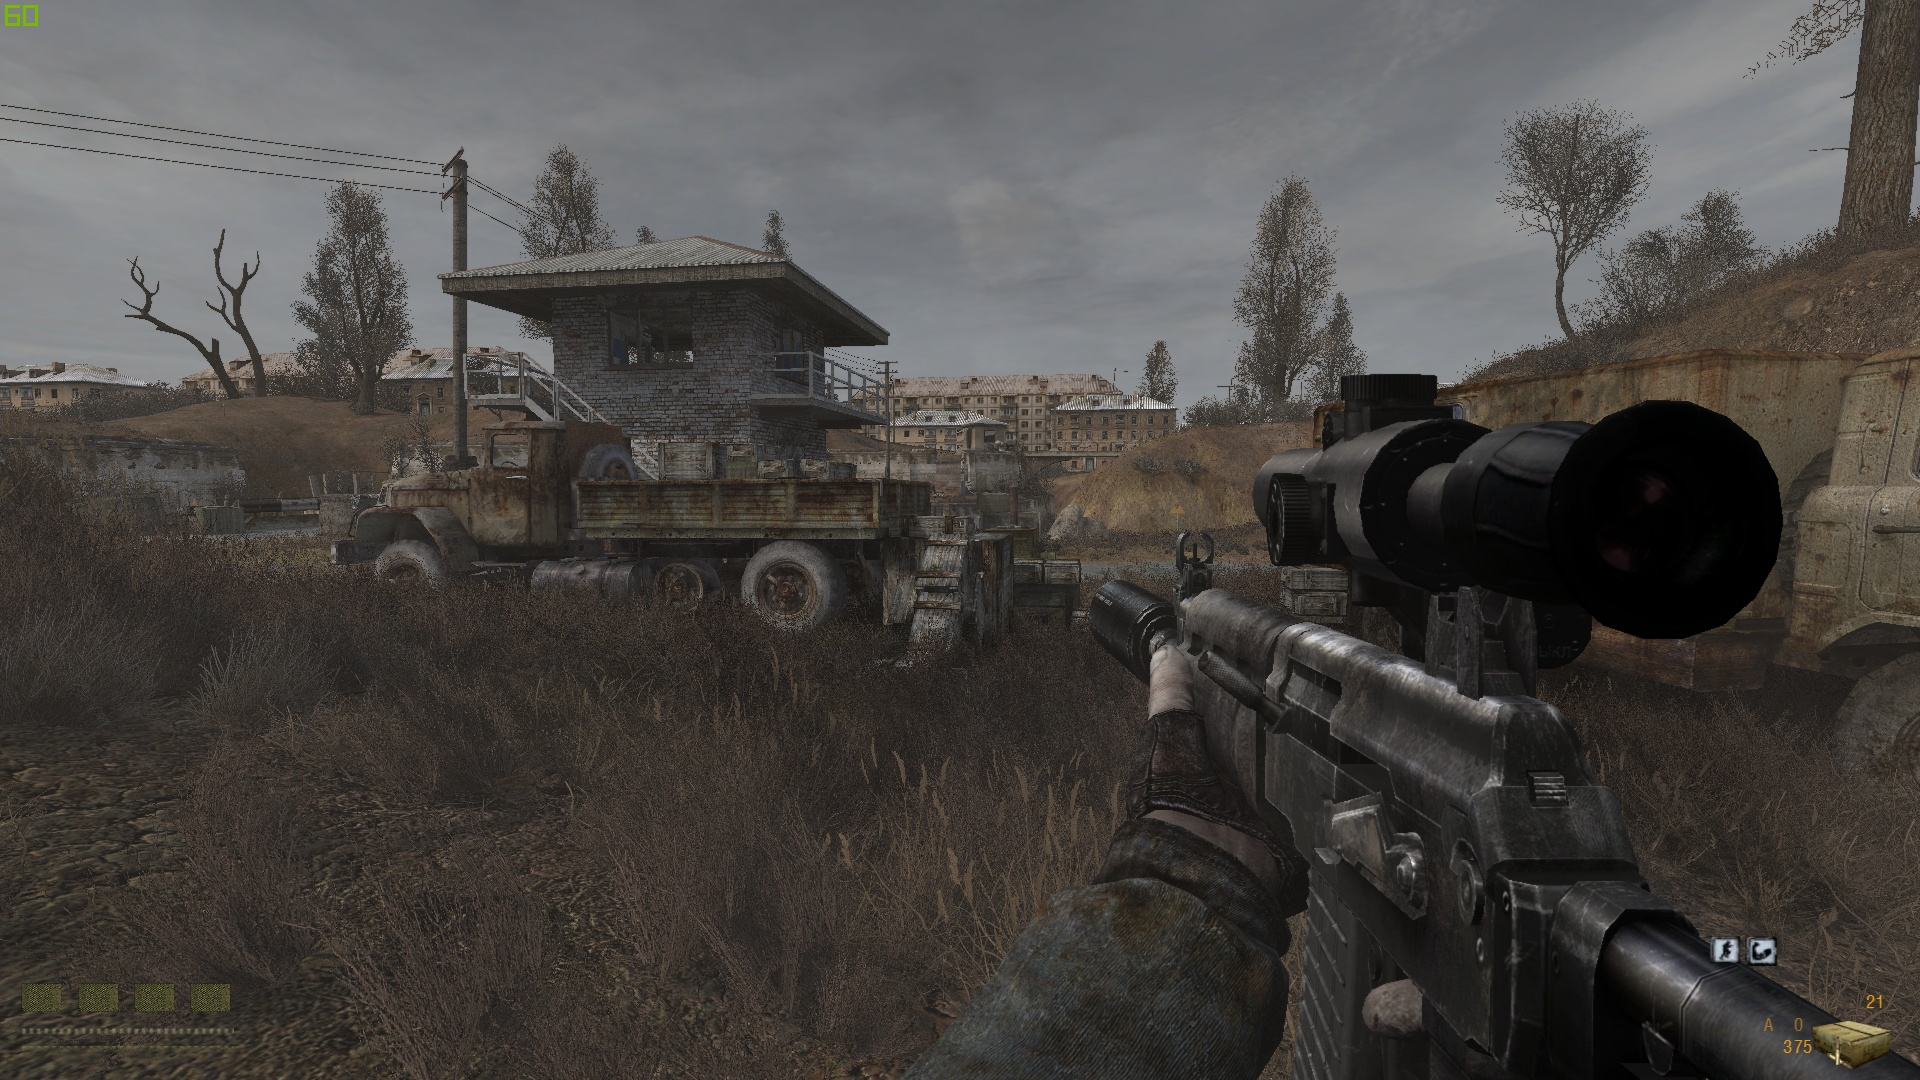 ss_Администратор_05-21-18_23-30-02_(l10_red_forest).jpg - S.T.A.L.K.E.R.: Call of Pripyat